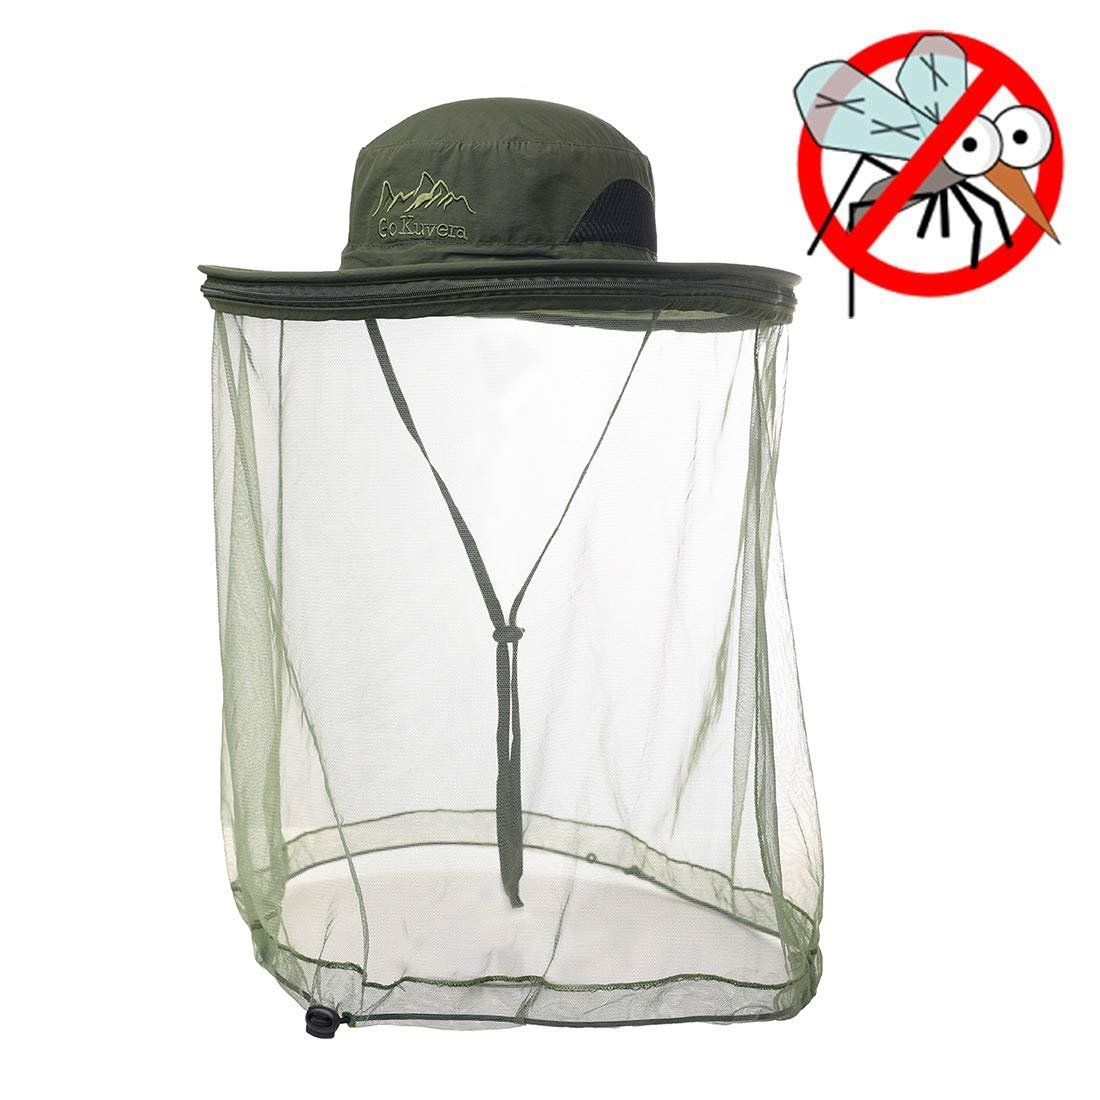 Mens Outdoor Safari Sun Blocker Protection SPF50 Fishing Bonnie Nets Mesh Bucket Hat for Large Head Women Green